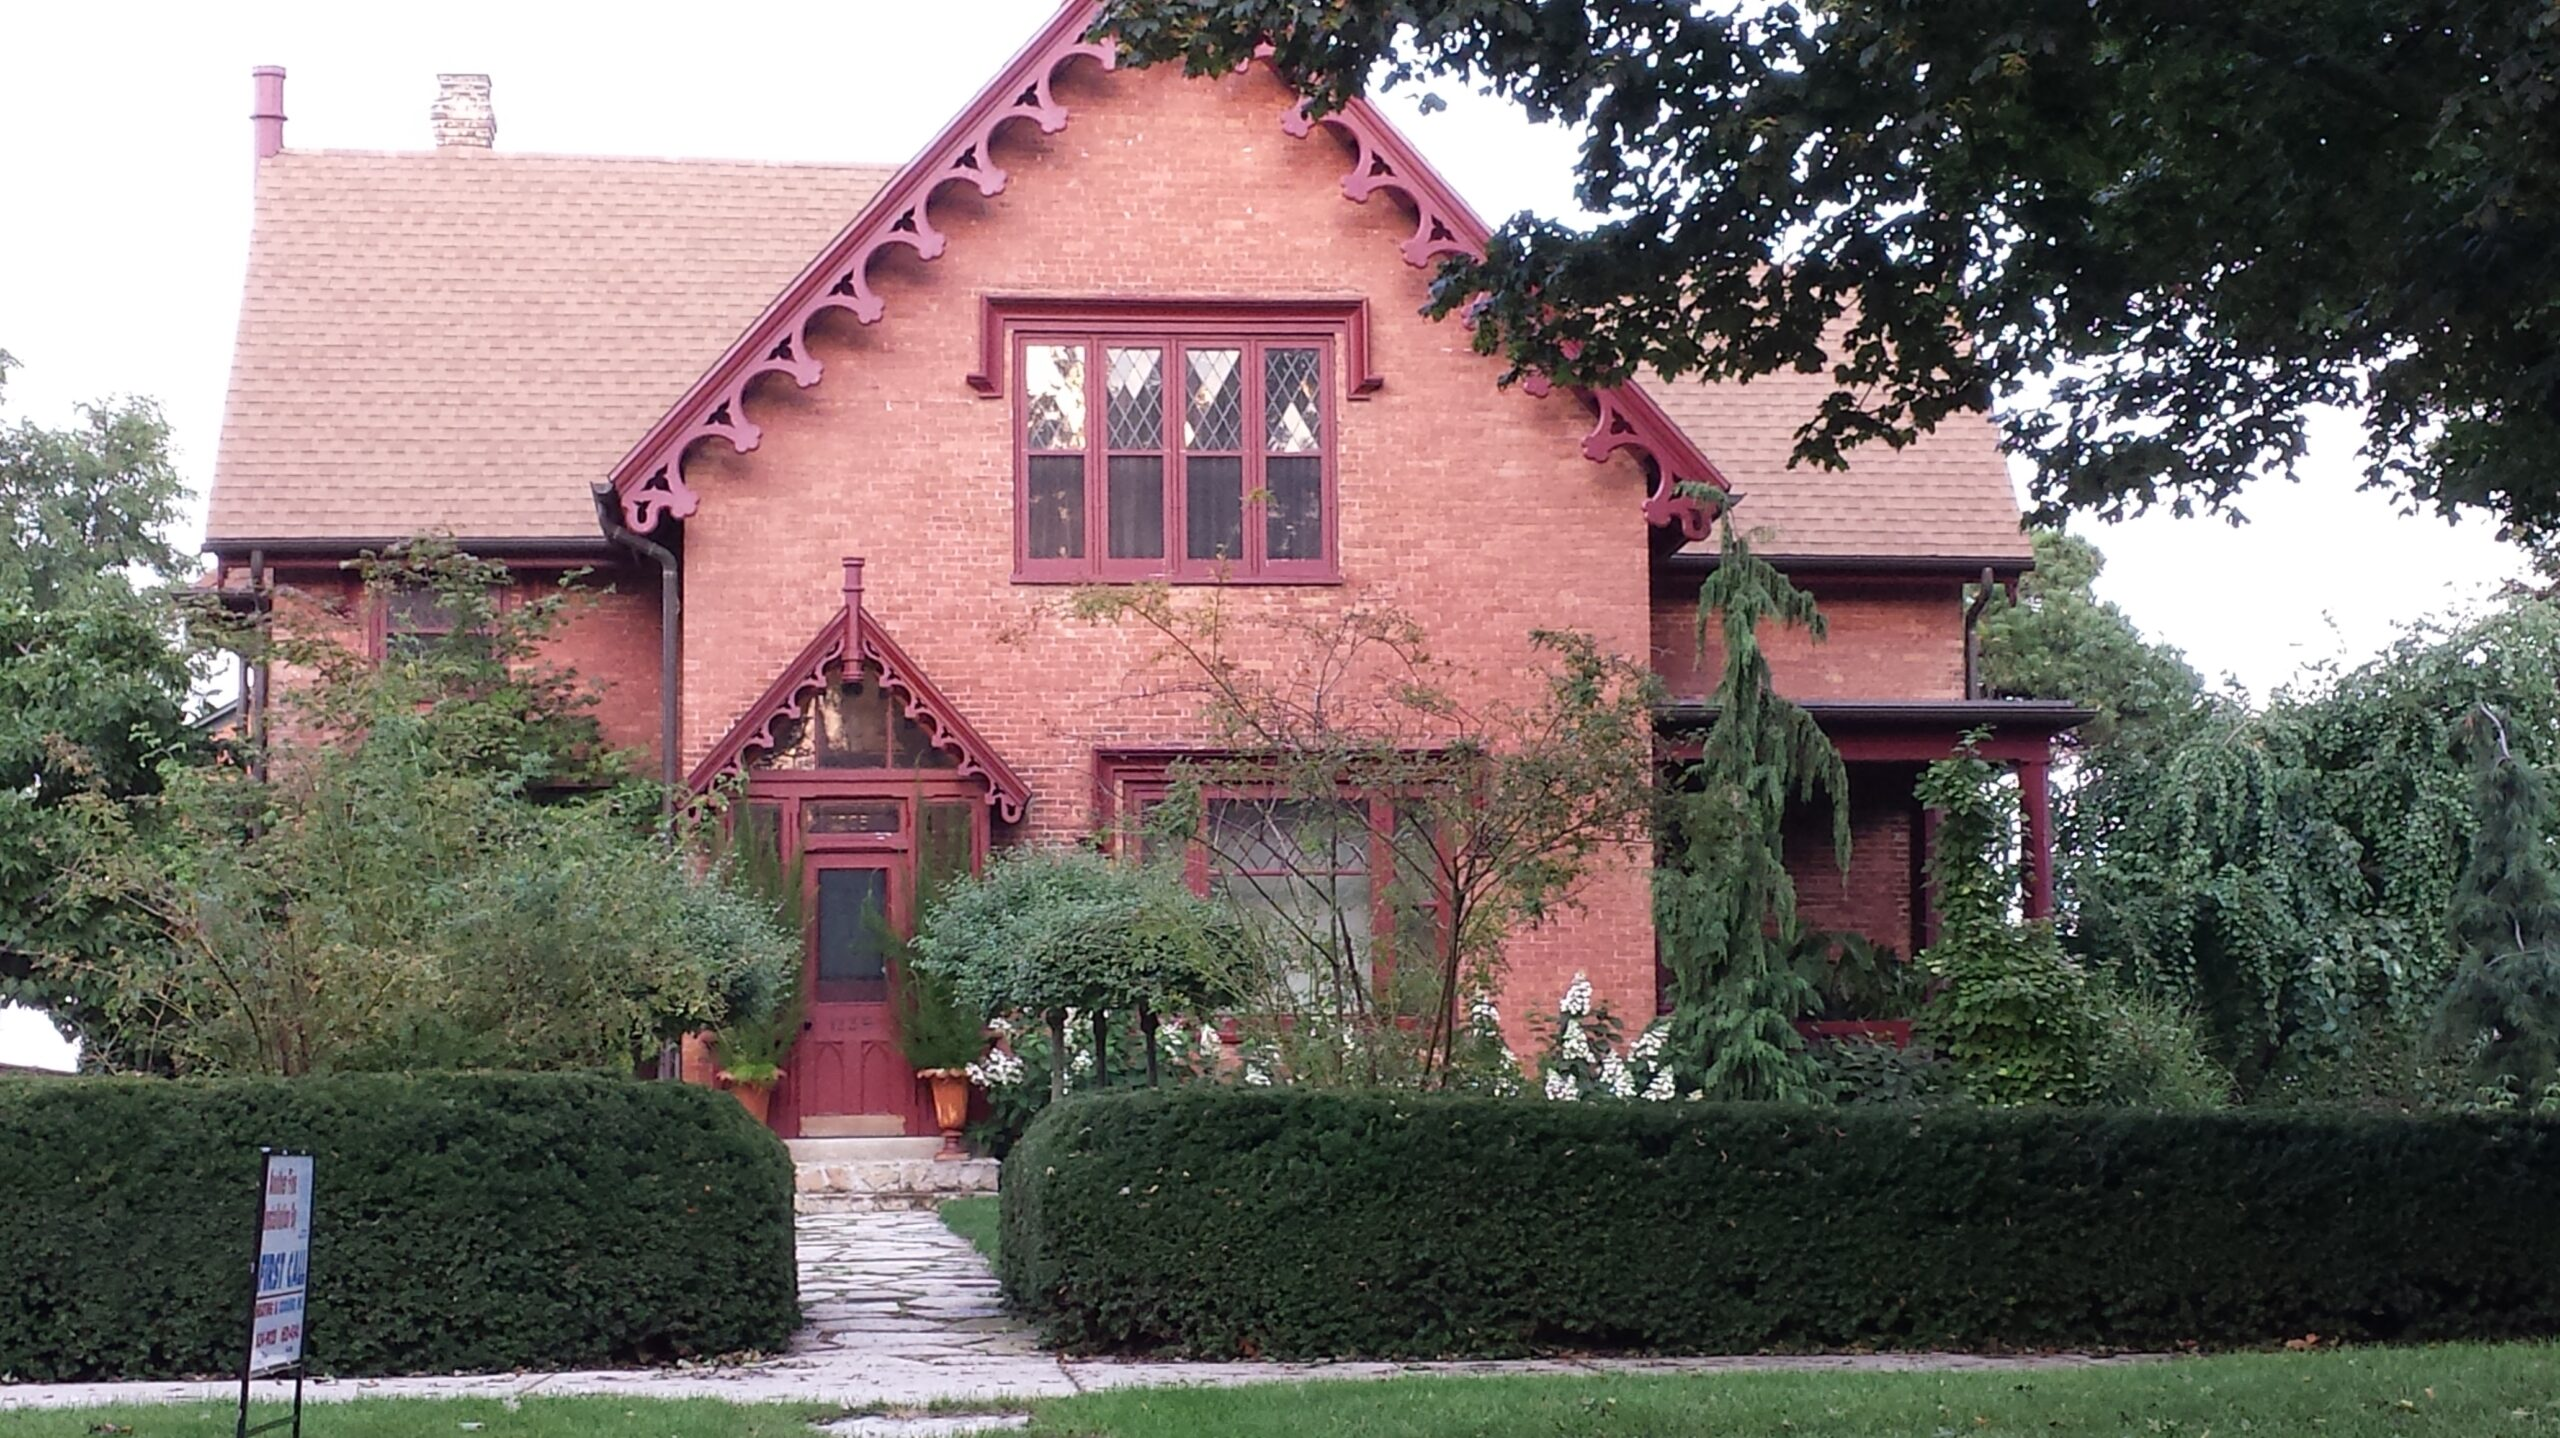 Home Tour in Racine, Wisconsin – Gothic, Italian, Greek Style Homes